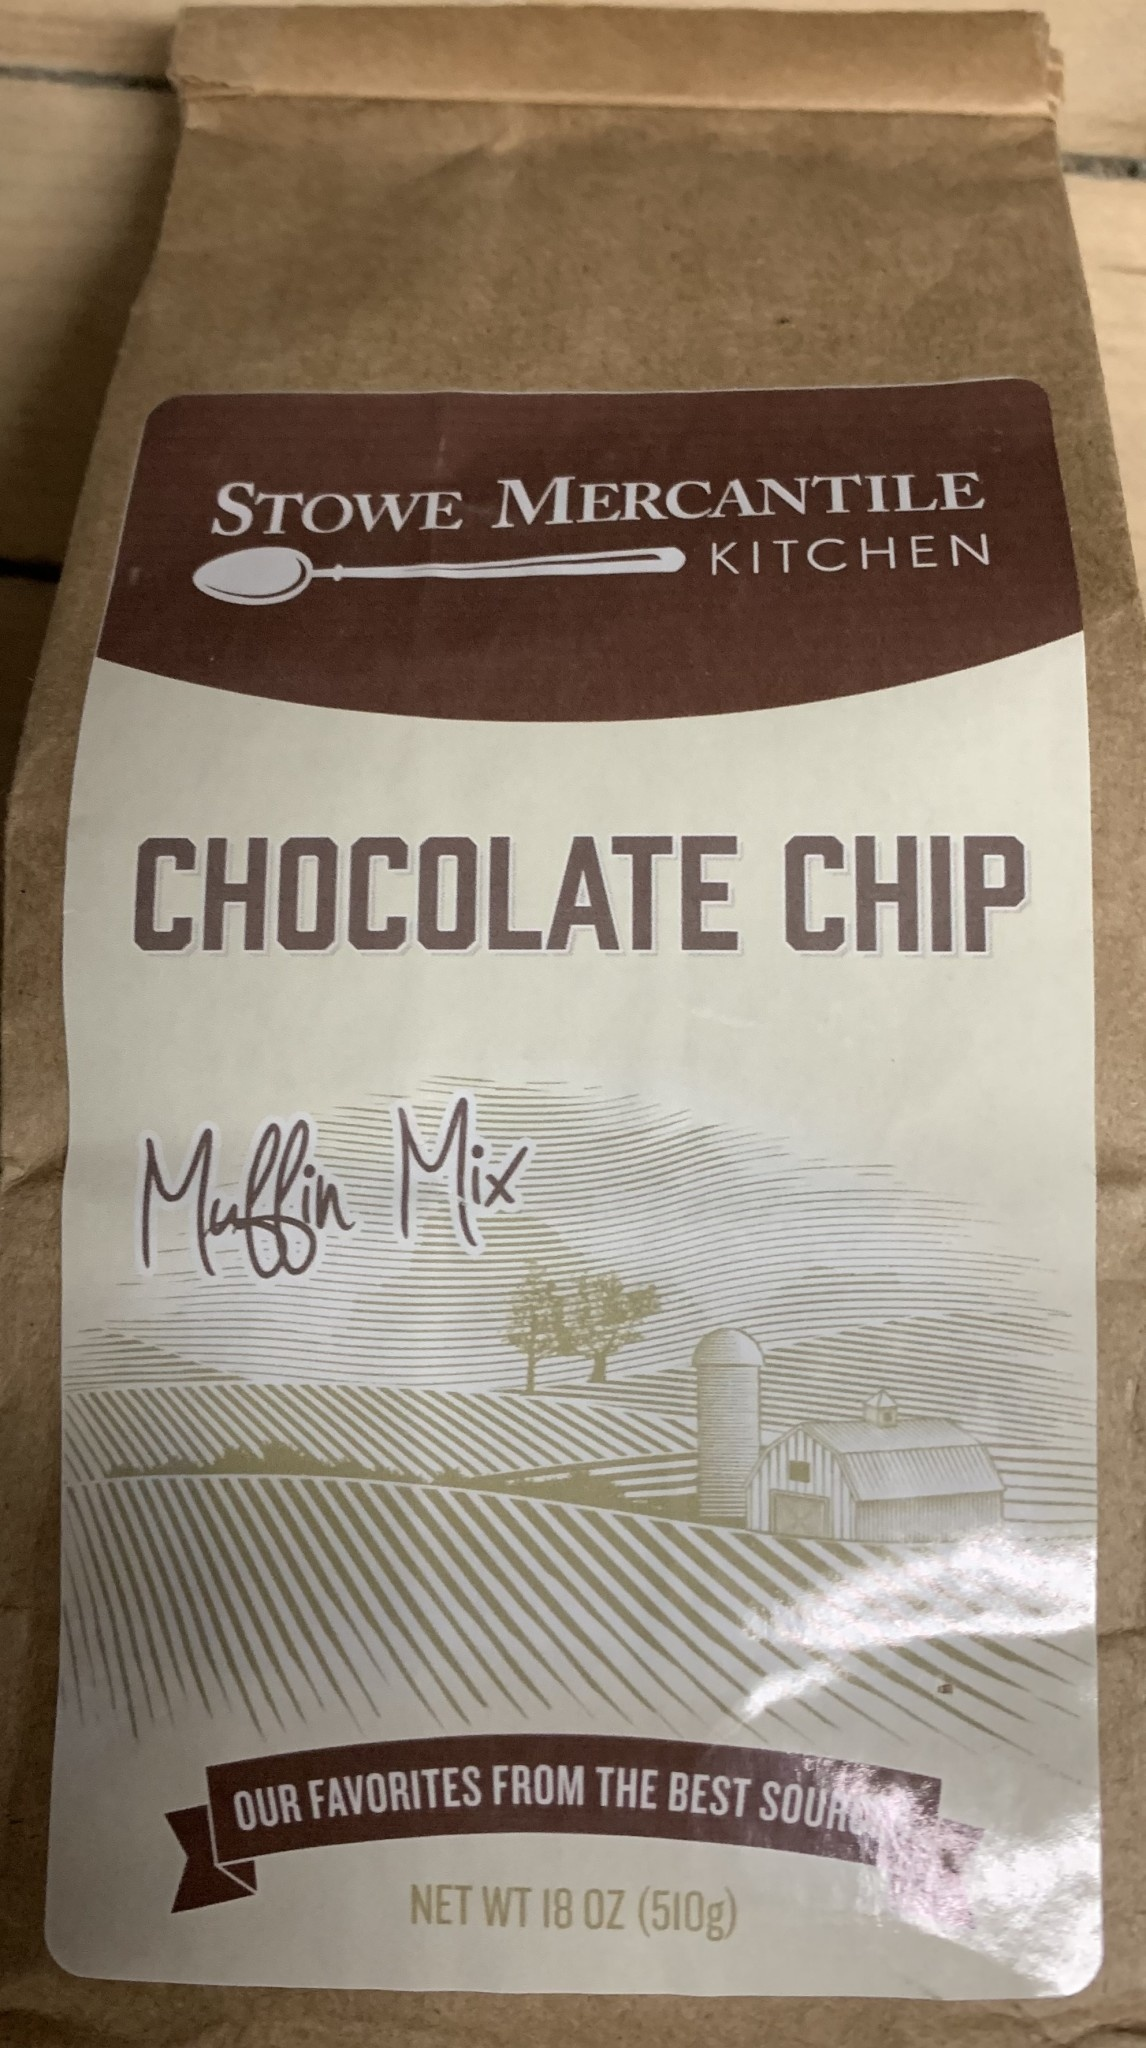 Stowe Mercantile Kitchen Muffin Mix Chocolate Chip